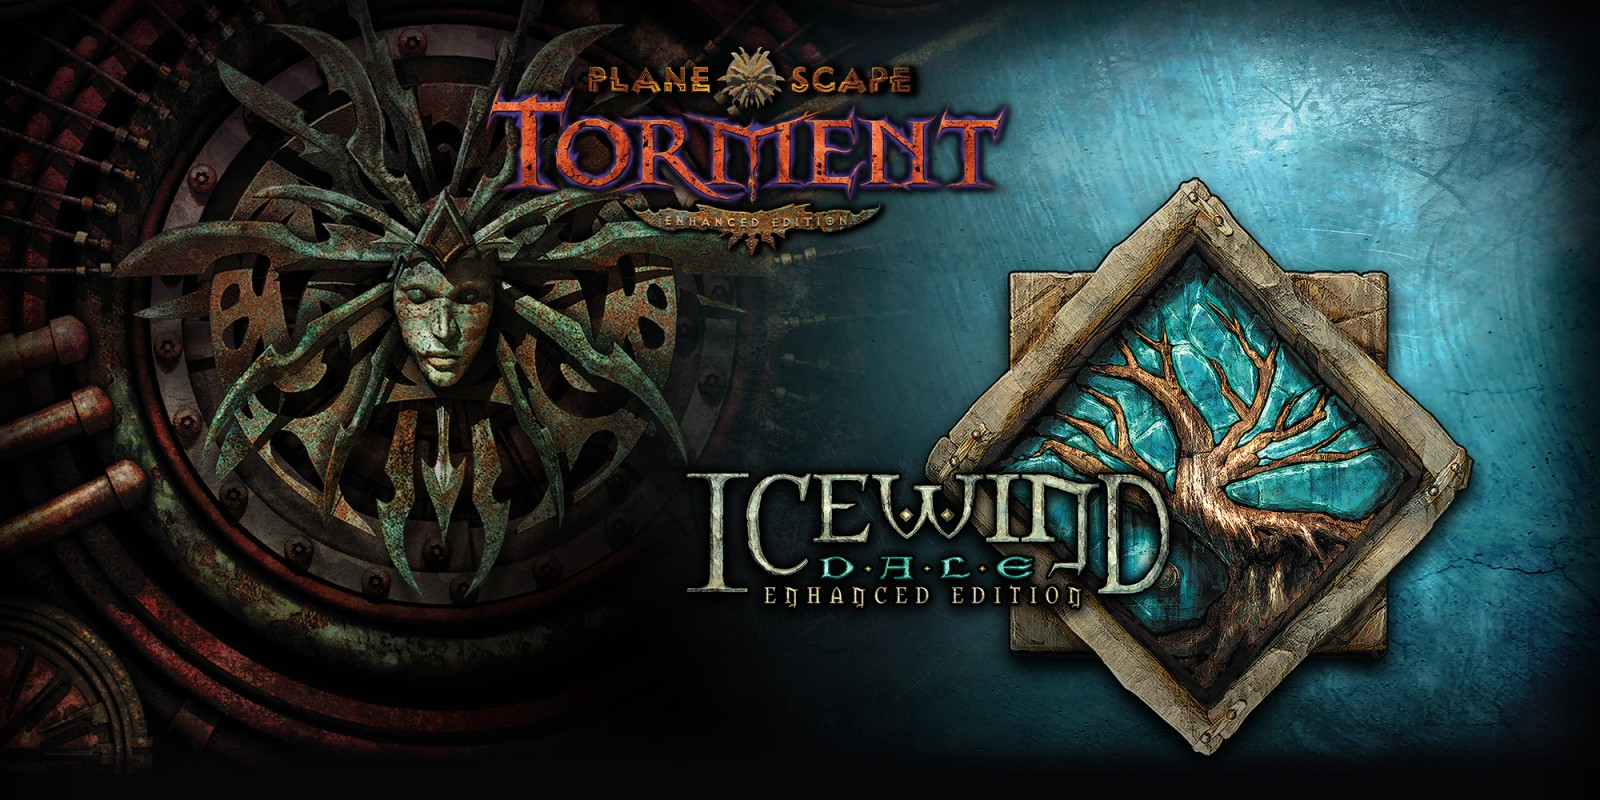 Planescape: Torment & Icewind Dale: Enhanced Editions